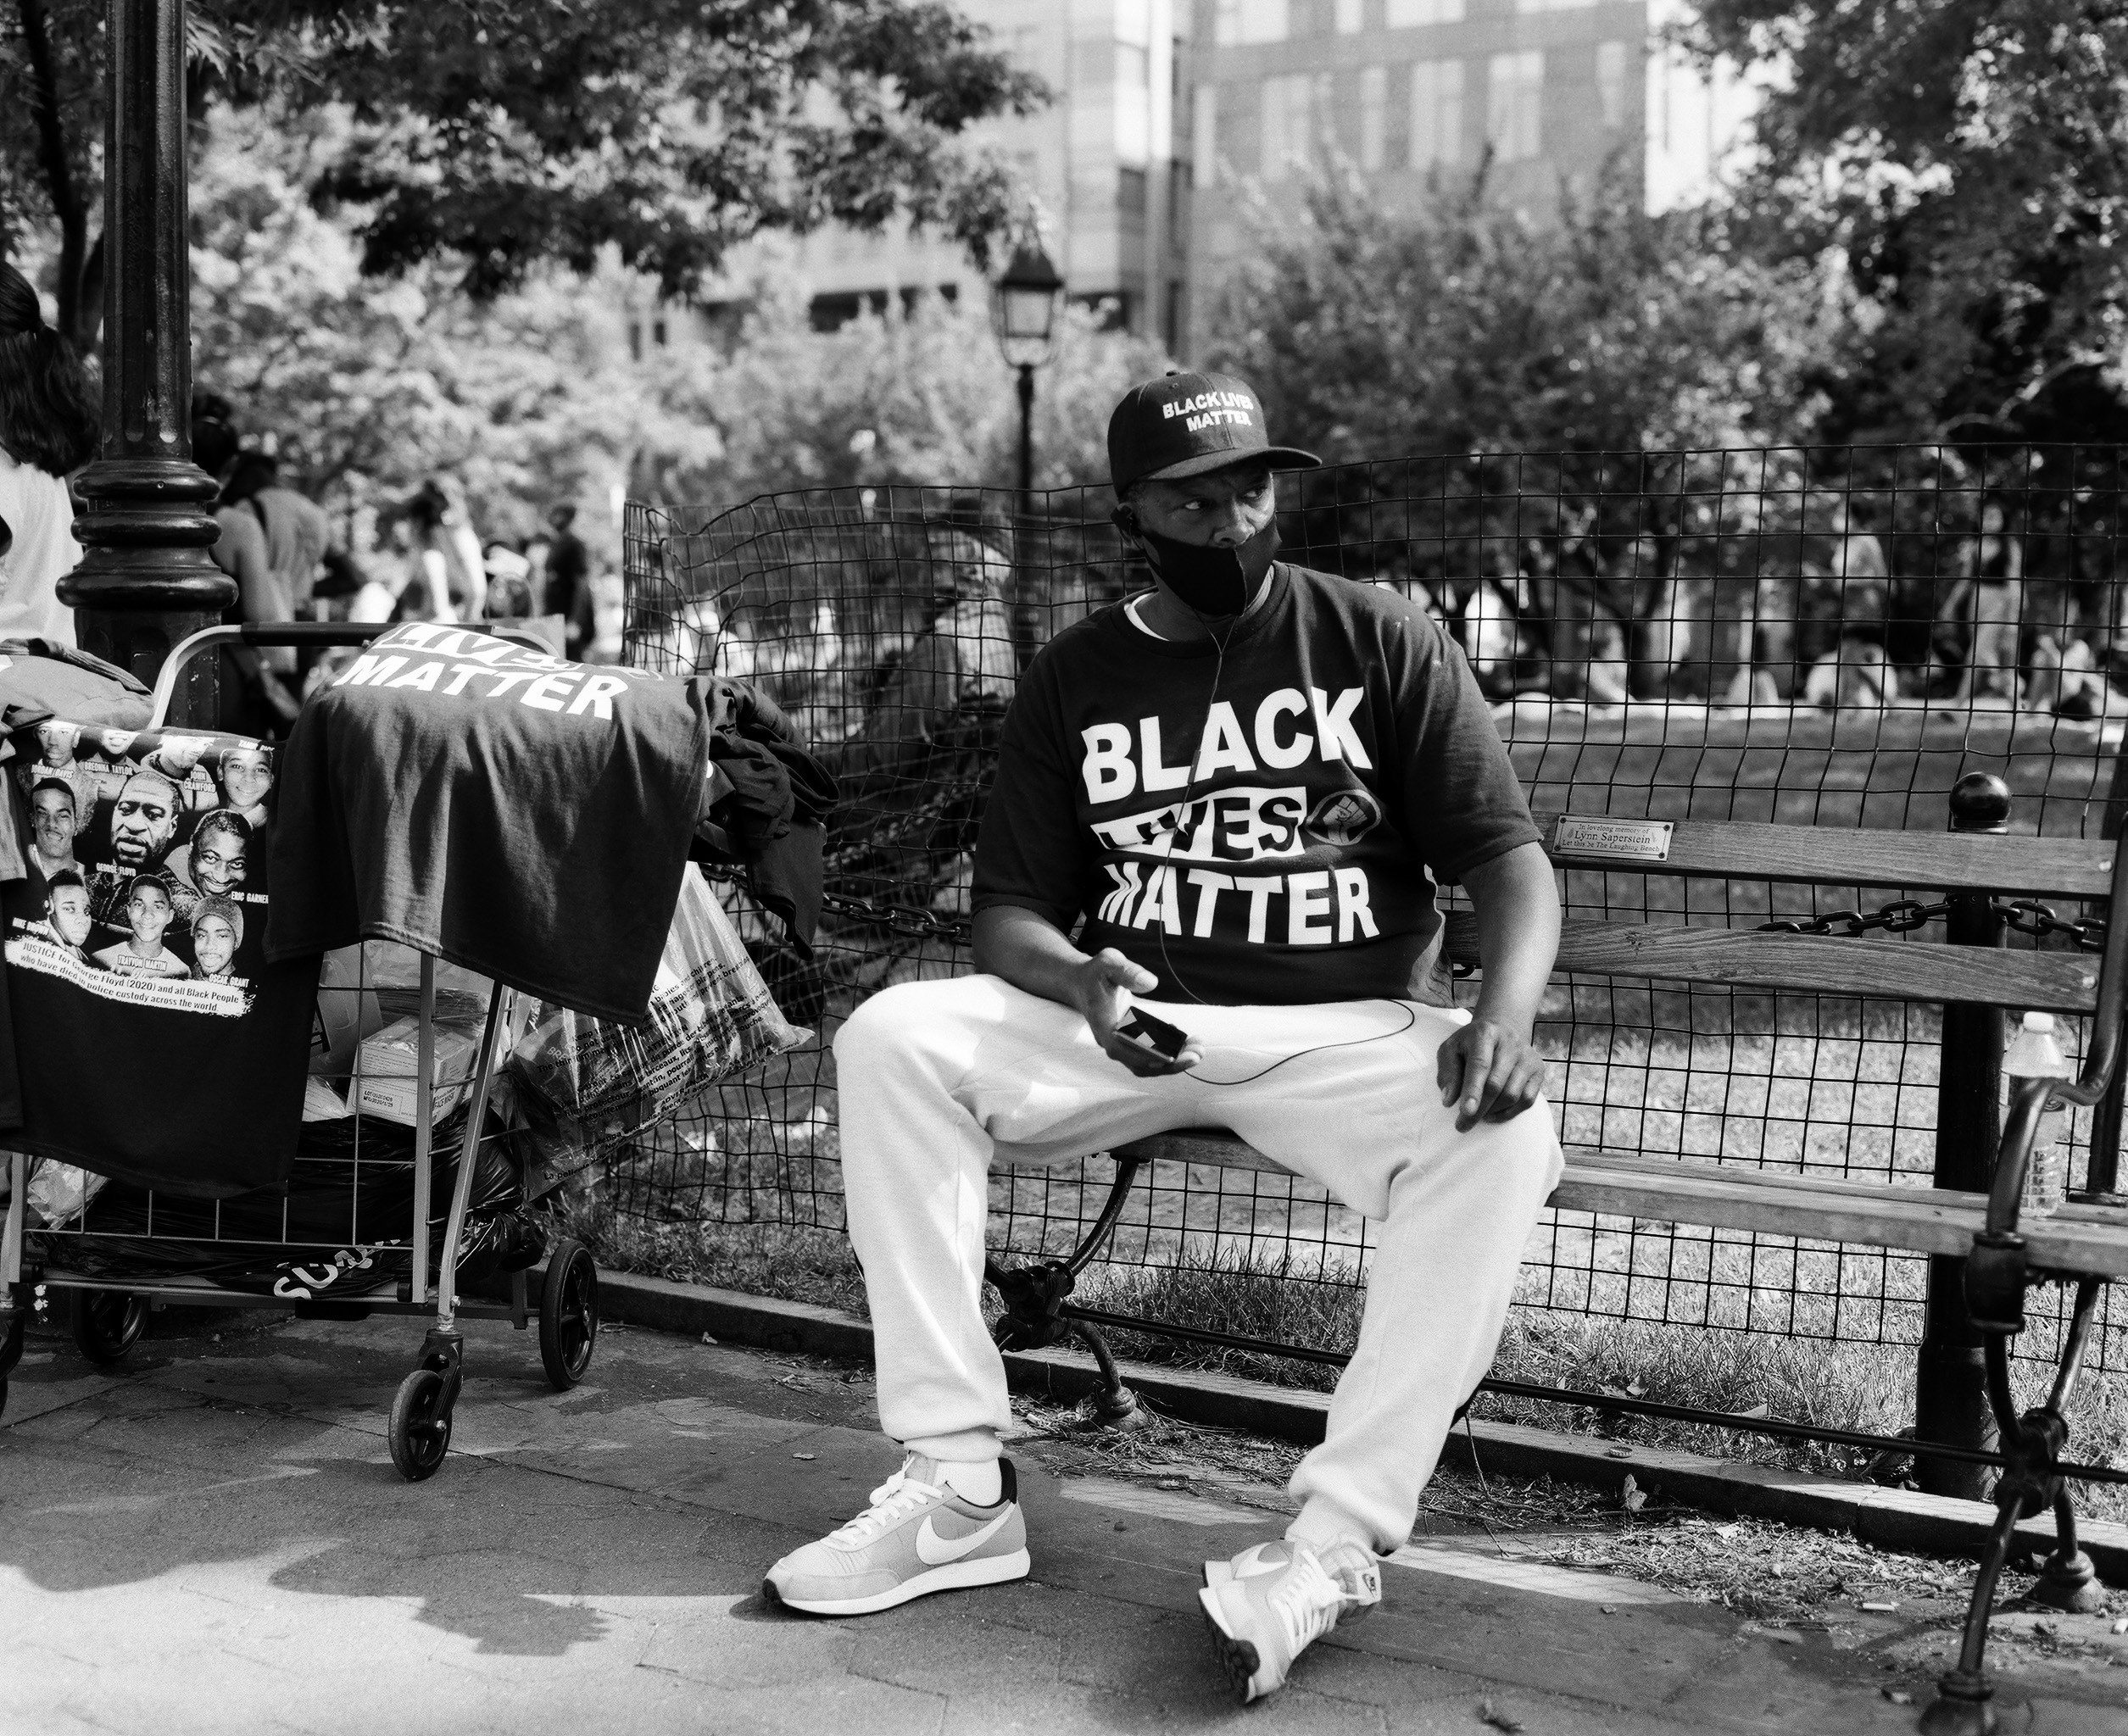 Art and Activism shot on ILFORD Delta 100 with Mamiya RB67 in Manhattan, NYC ©Kevin Claiborne